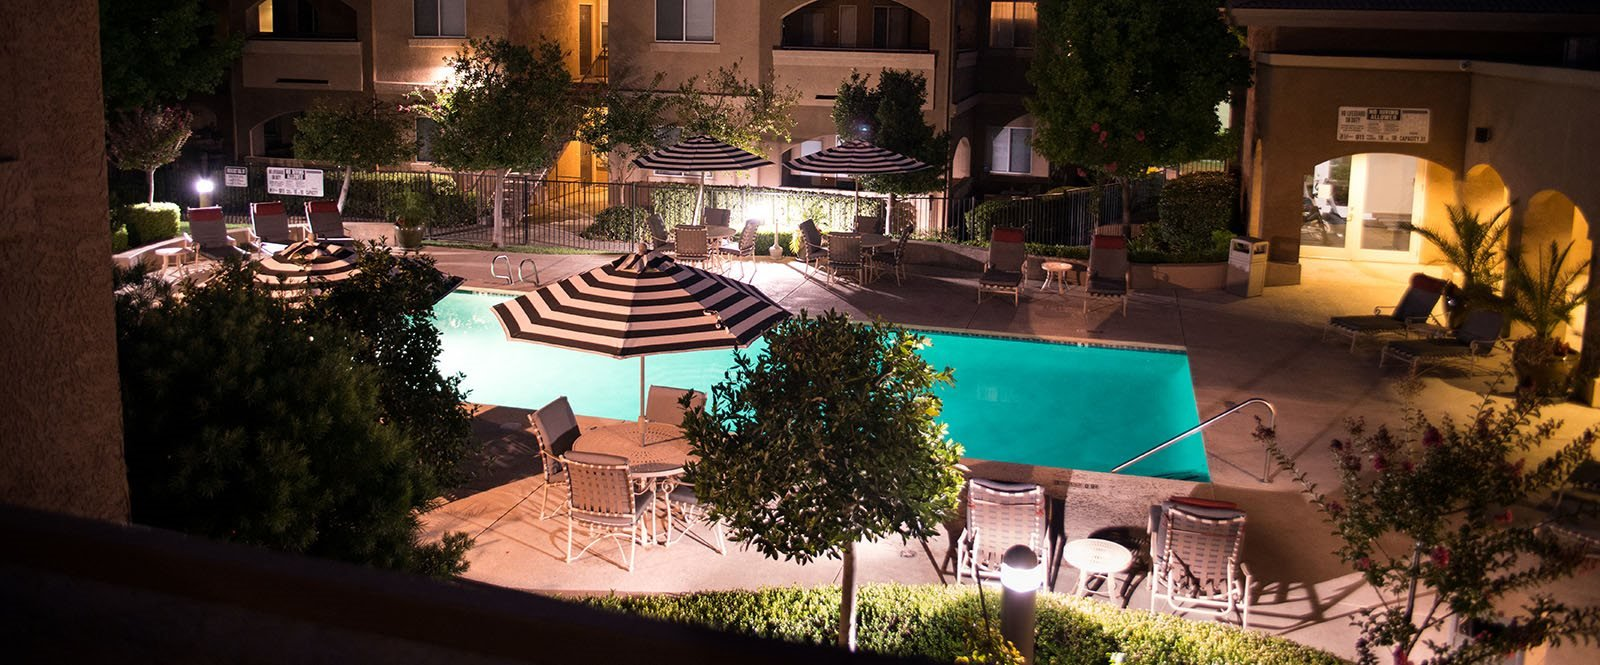 Pool, spa and lounge chairs  l  l Vineyard Gate Apartments in Roseville CA